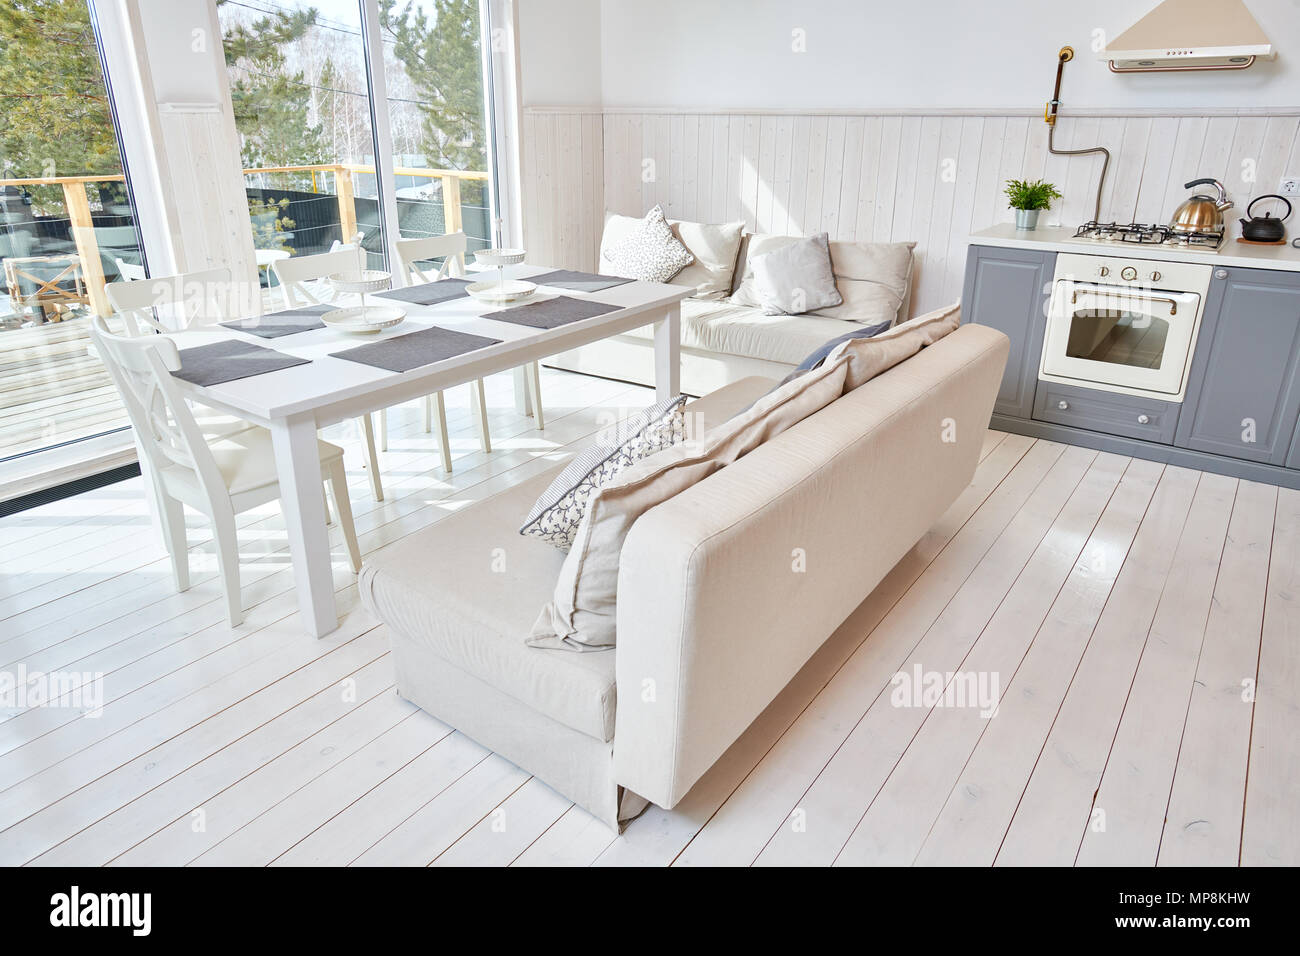 Wide angle shot of open kitchen interior with white furniture and grey counters in minimalistic Scandinavian design lit by sunlight, copy space, nobod - Stock Image